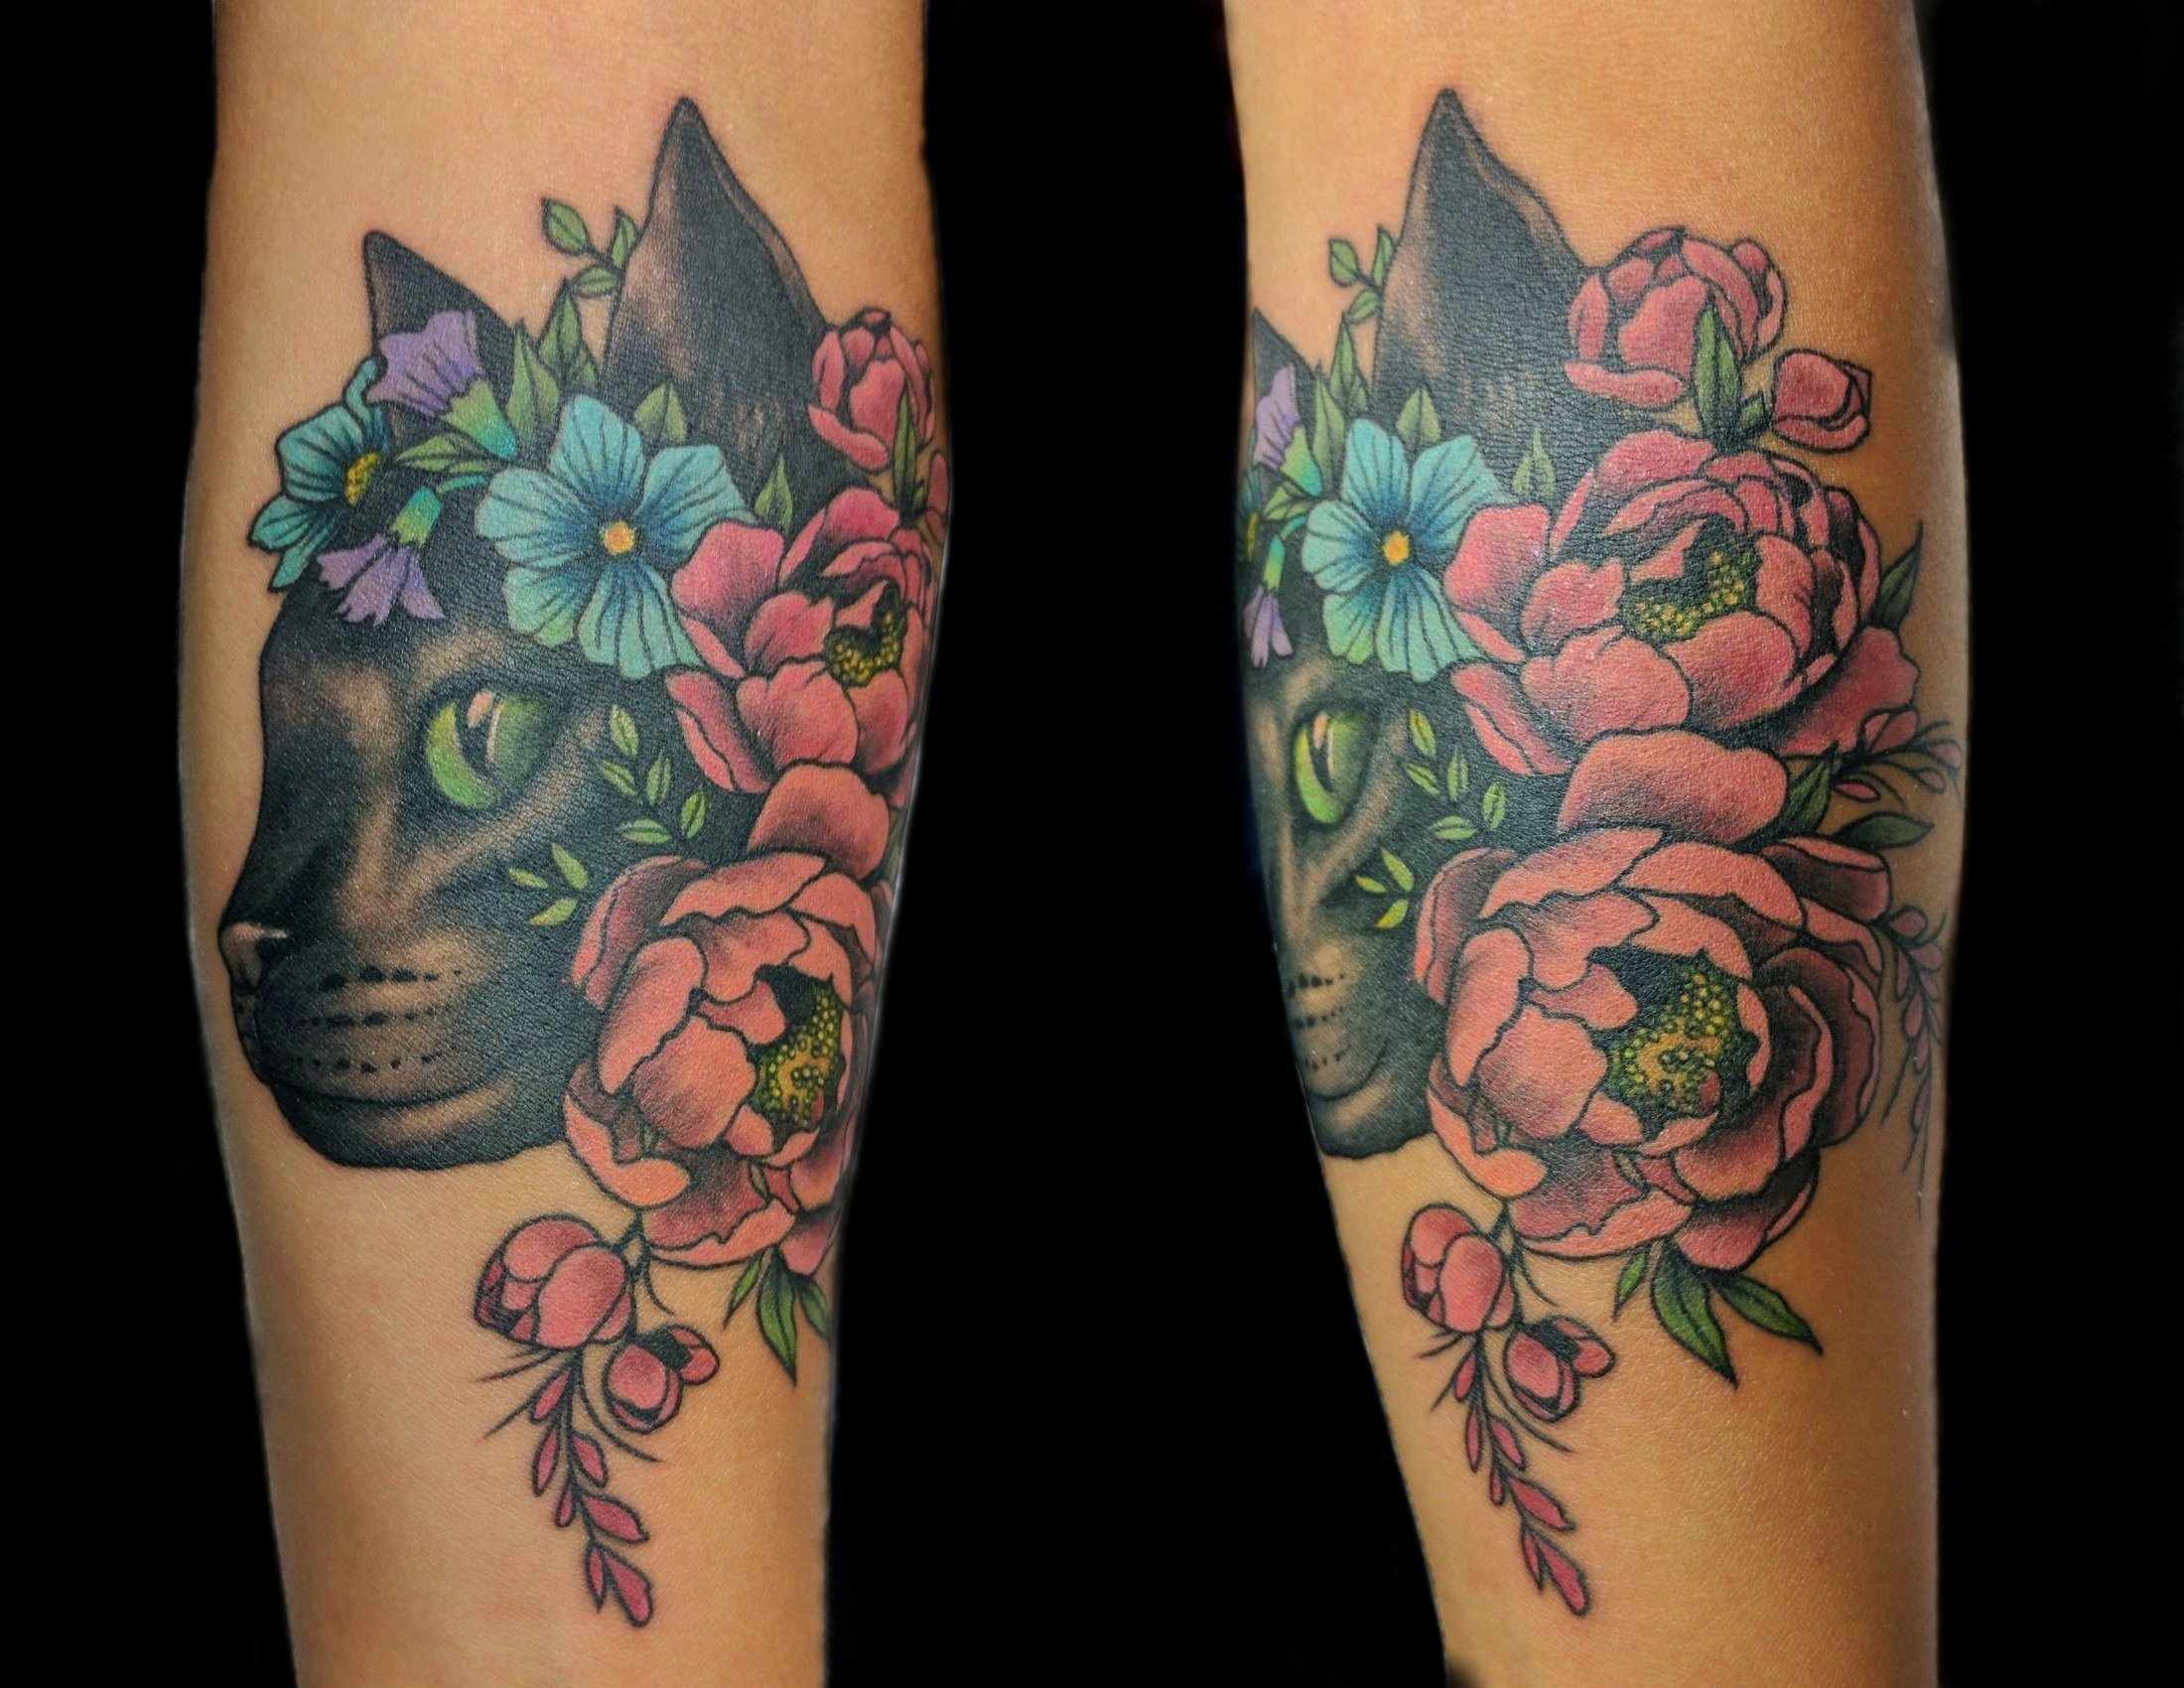 cat and flowers - left forearm